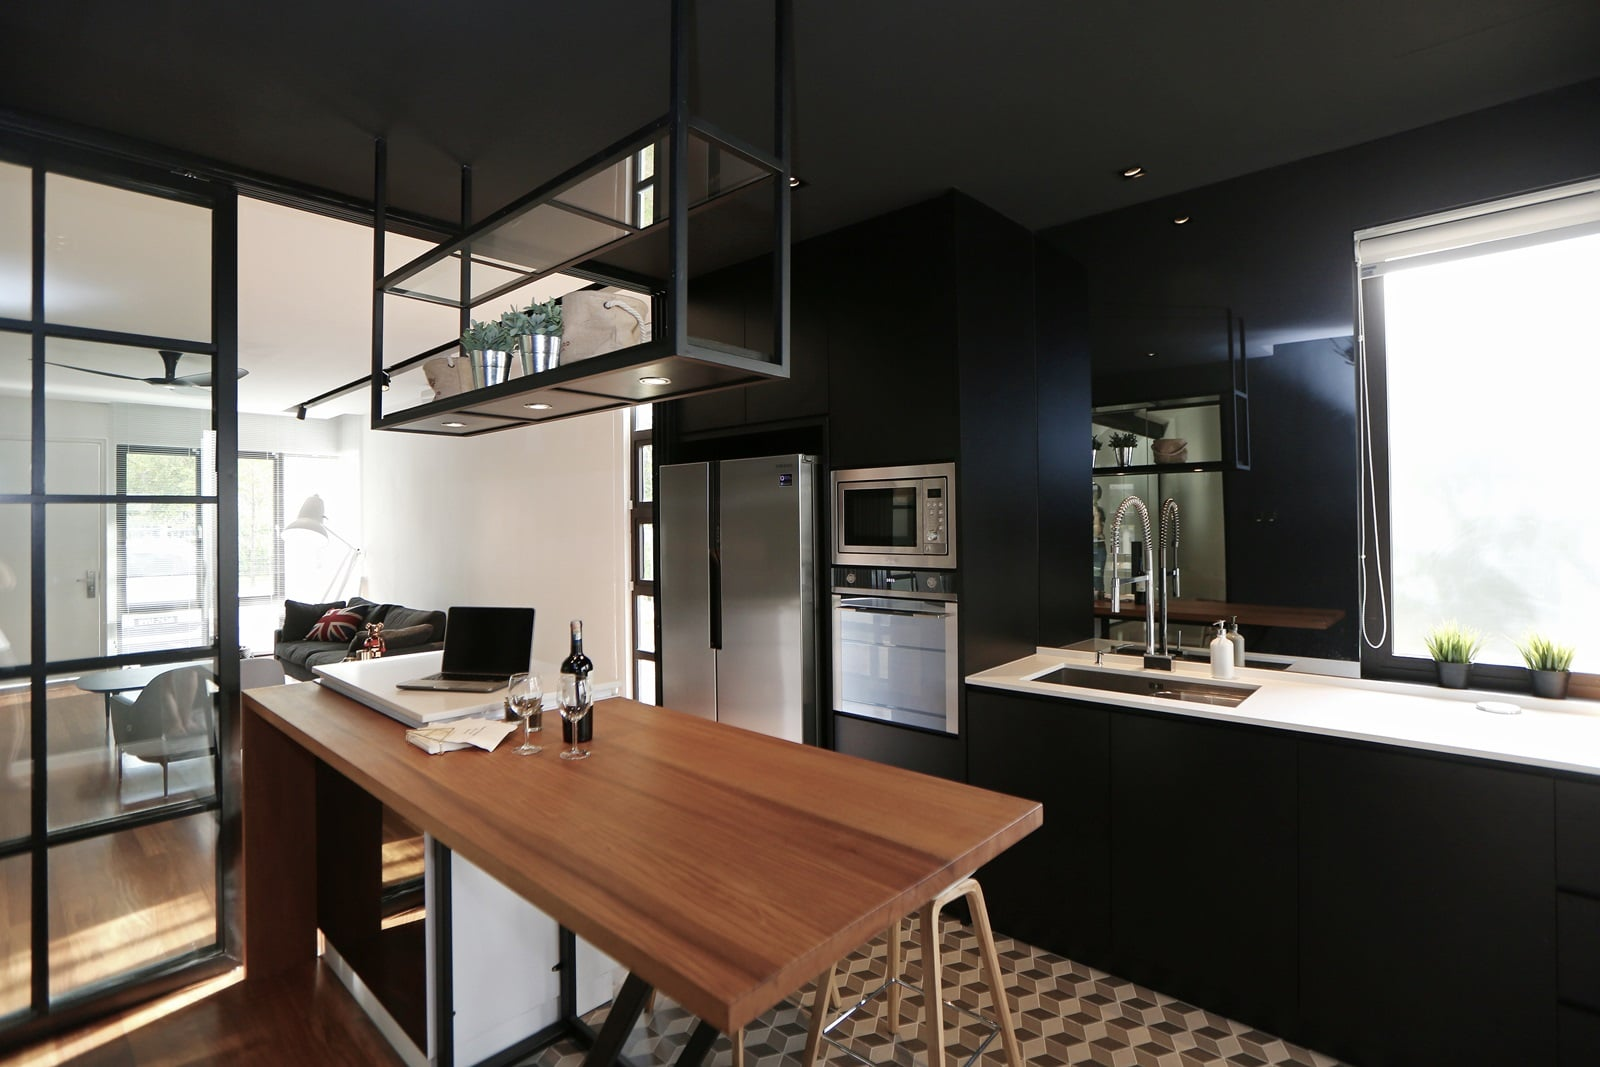 Darker finishing for built-in kitchen cabinets contrast beautifully against the white and wood grain finishing of the island counter.